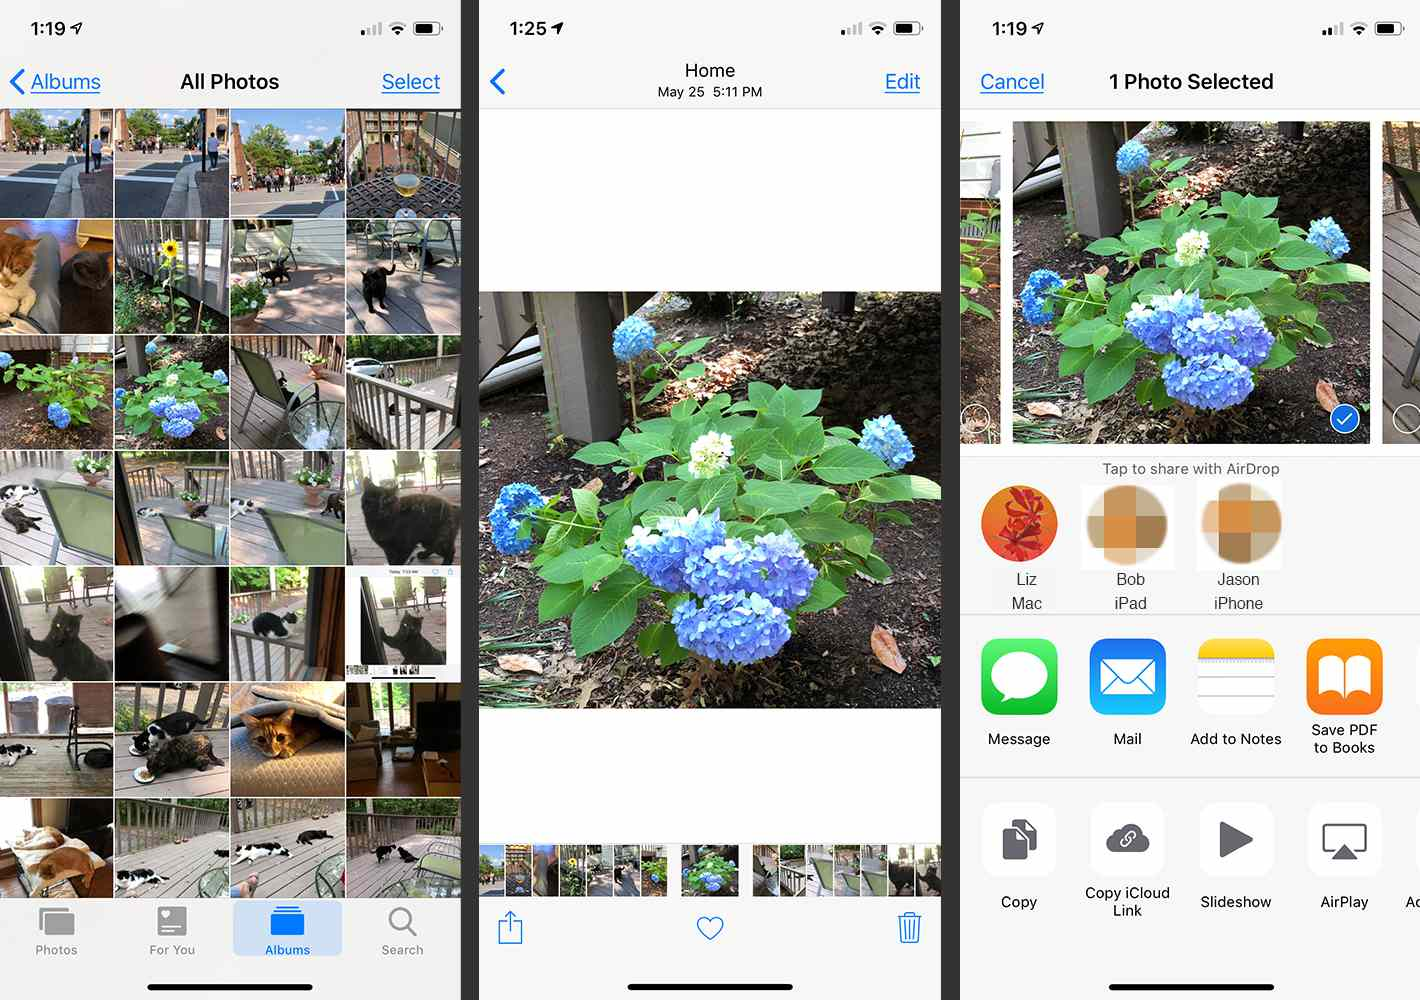 How to Use AirDrop on Your iPhone